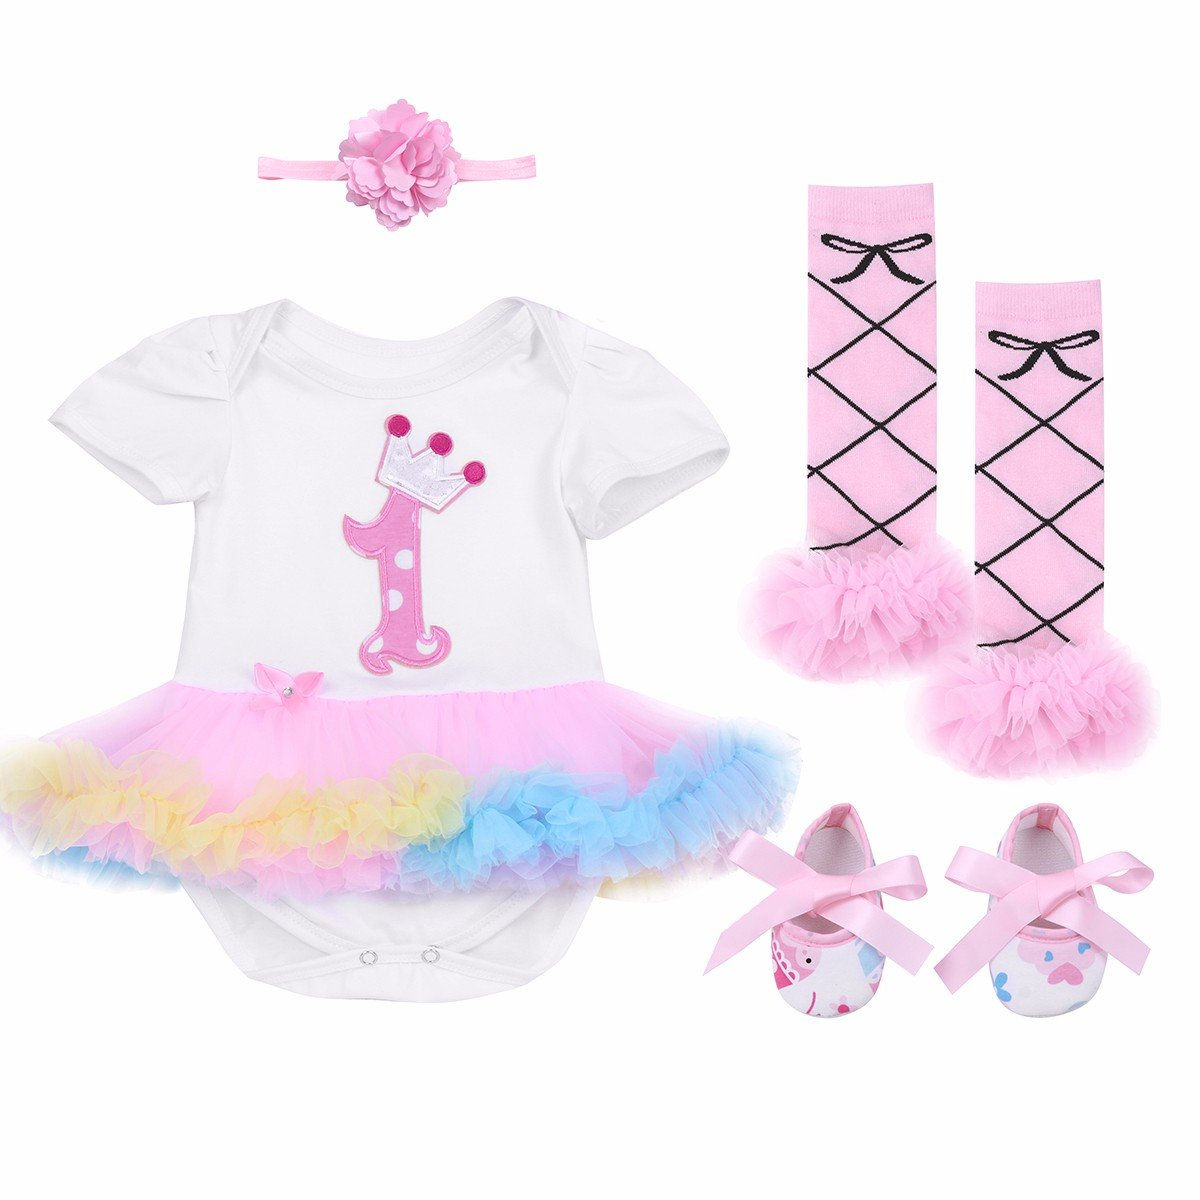 FEESHOW Baby Girl First Birthday Outfits Romper Tutu Skirt Headband Leg Warmer Shoes Set